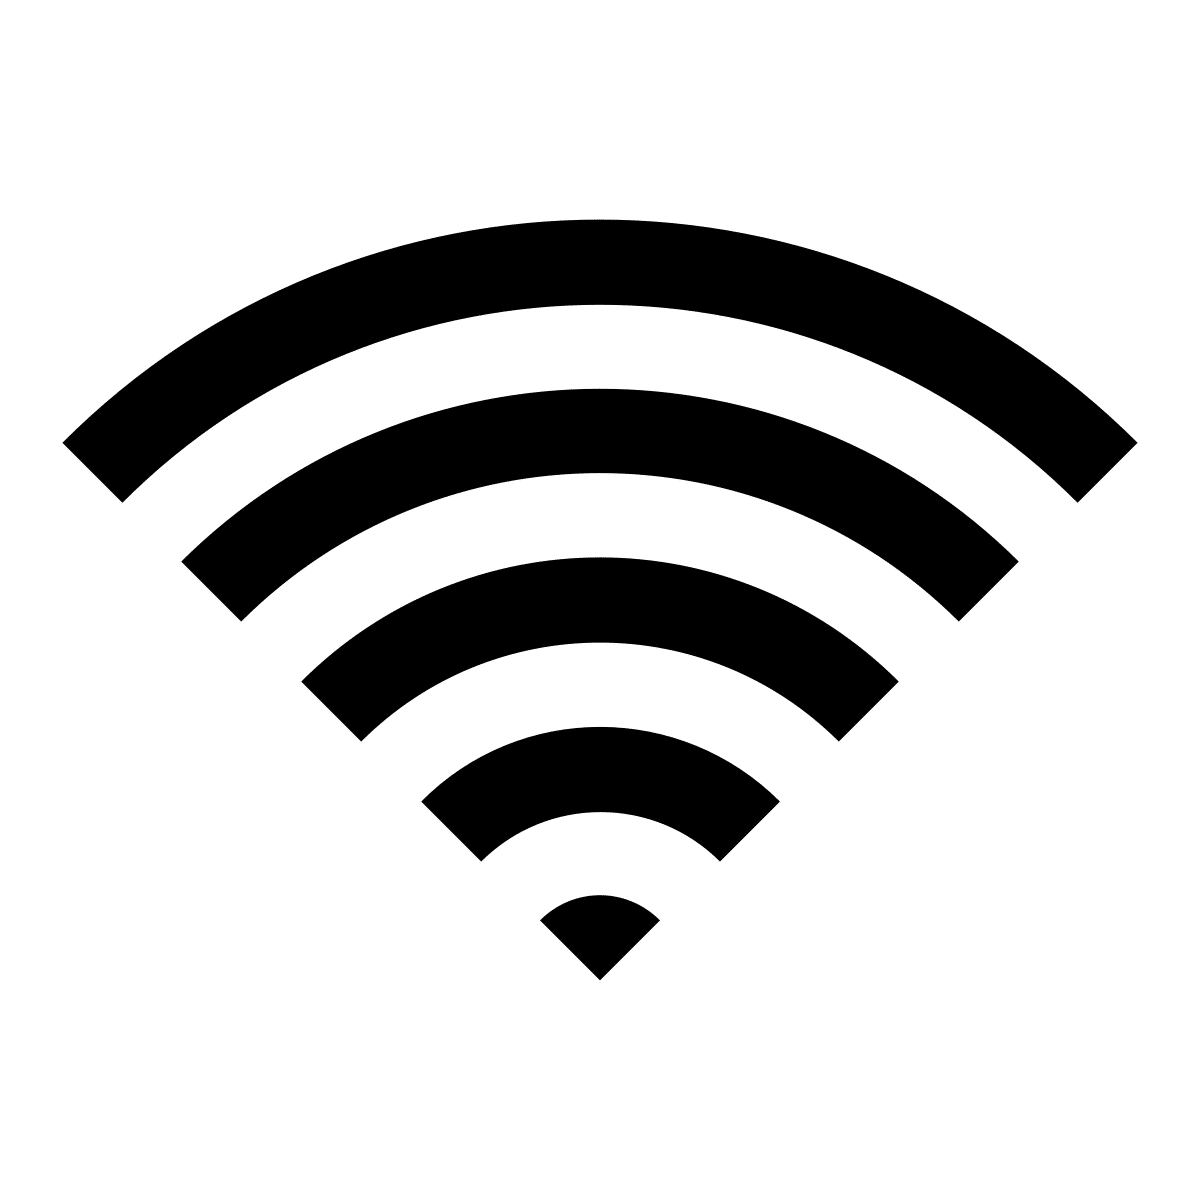 Logo Vector WiFi Transparan